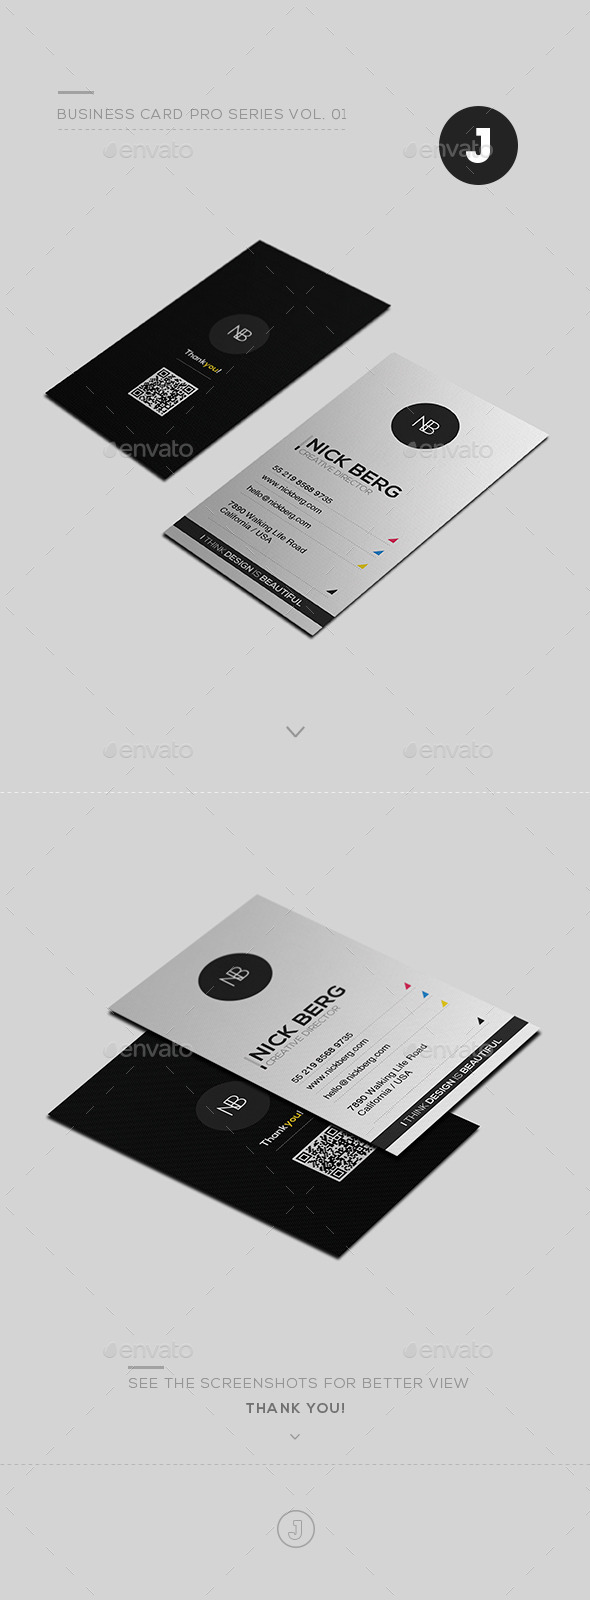 Business Card Pro Series Vol. 01 - Creative Business Cards